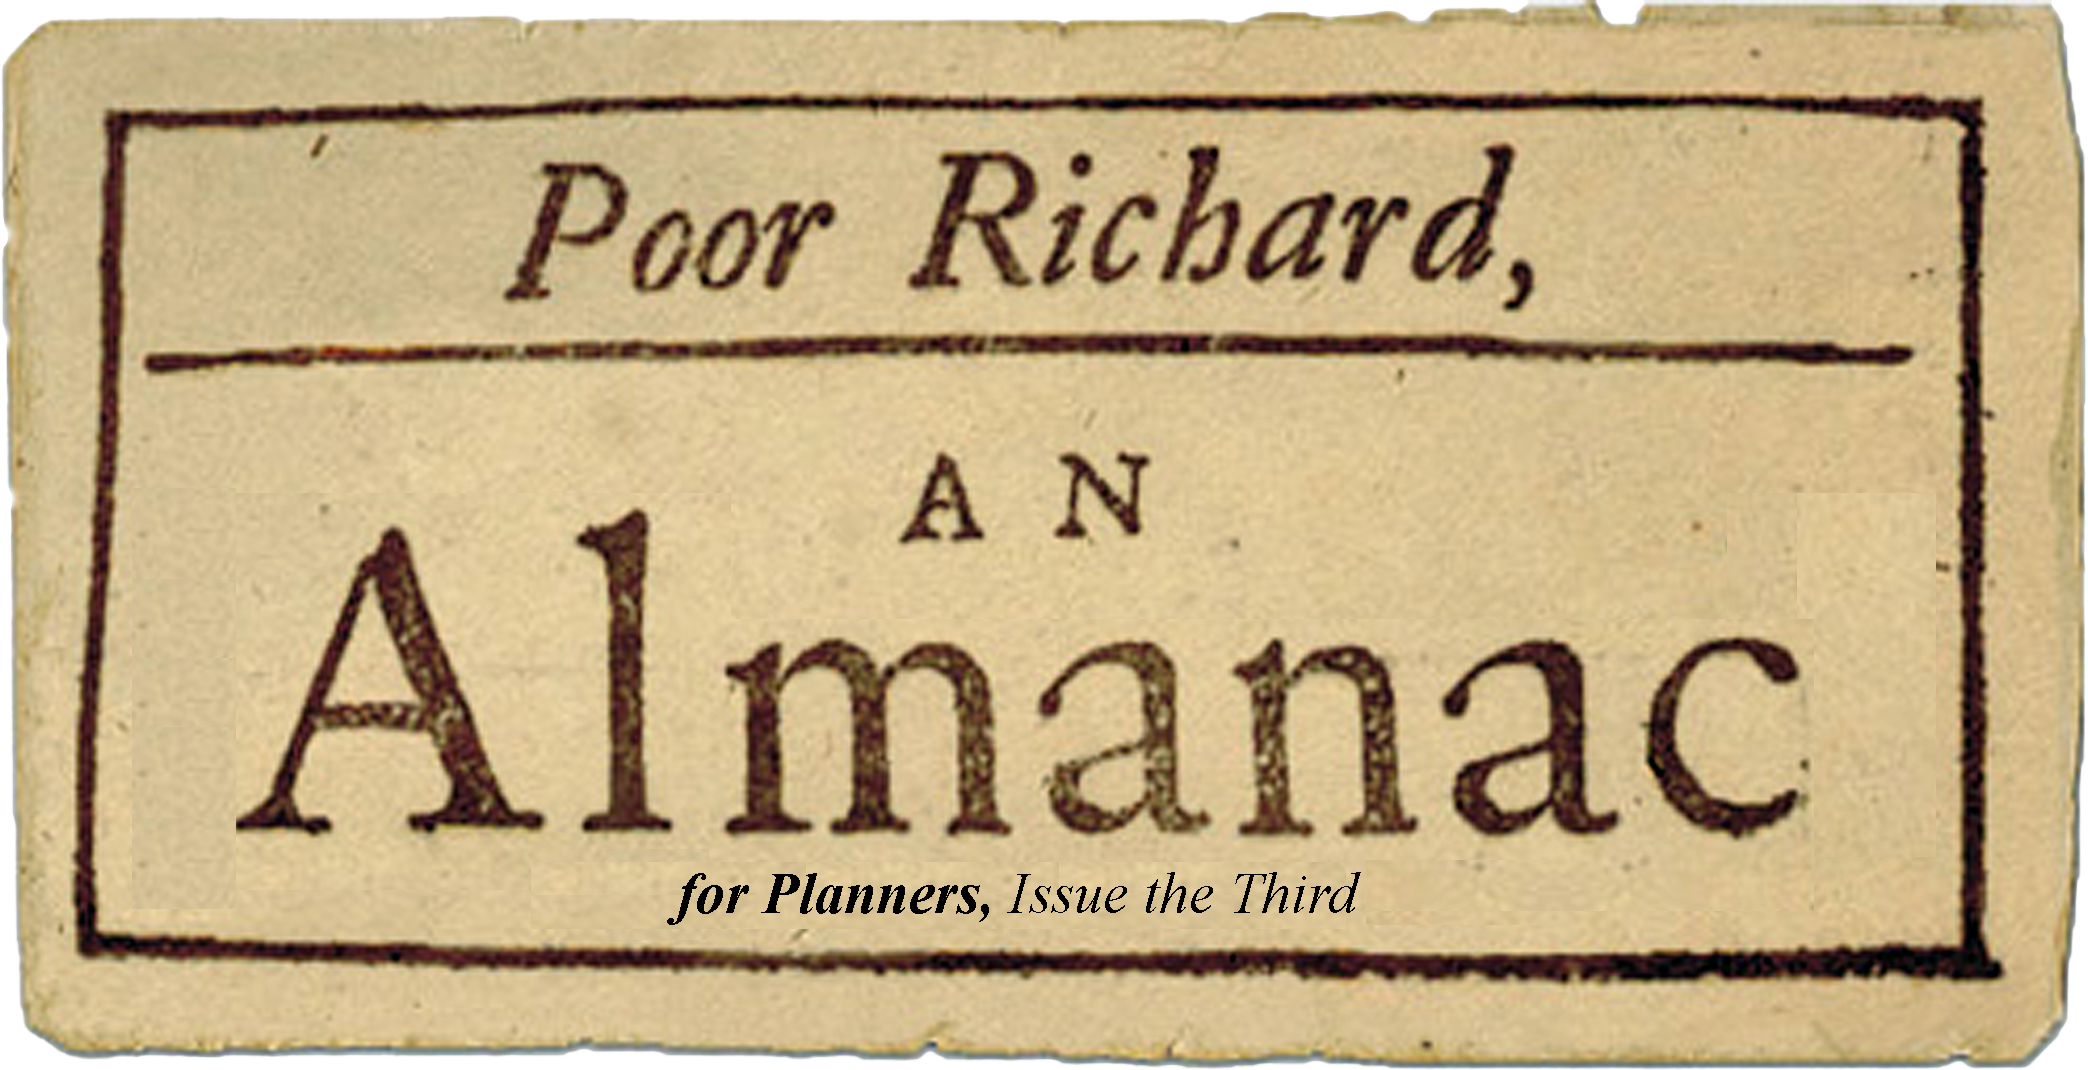 poor richards almanac 34 quotes from poor richard's almanack: 'three may keep a secret, if two of them are dead.